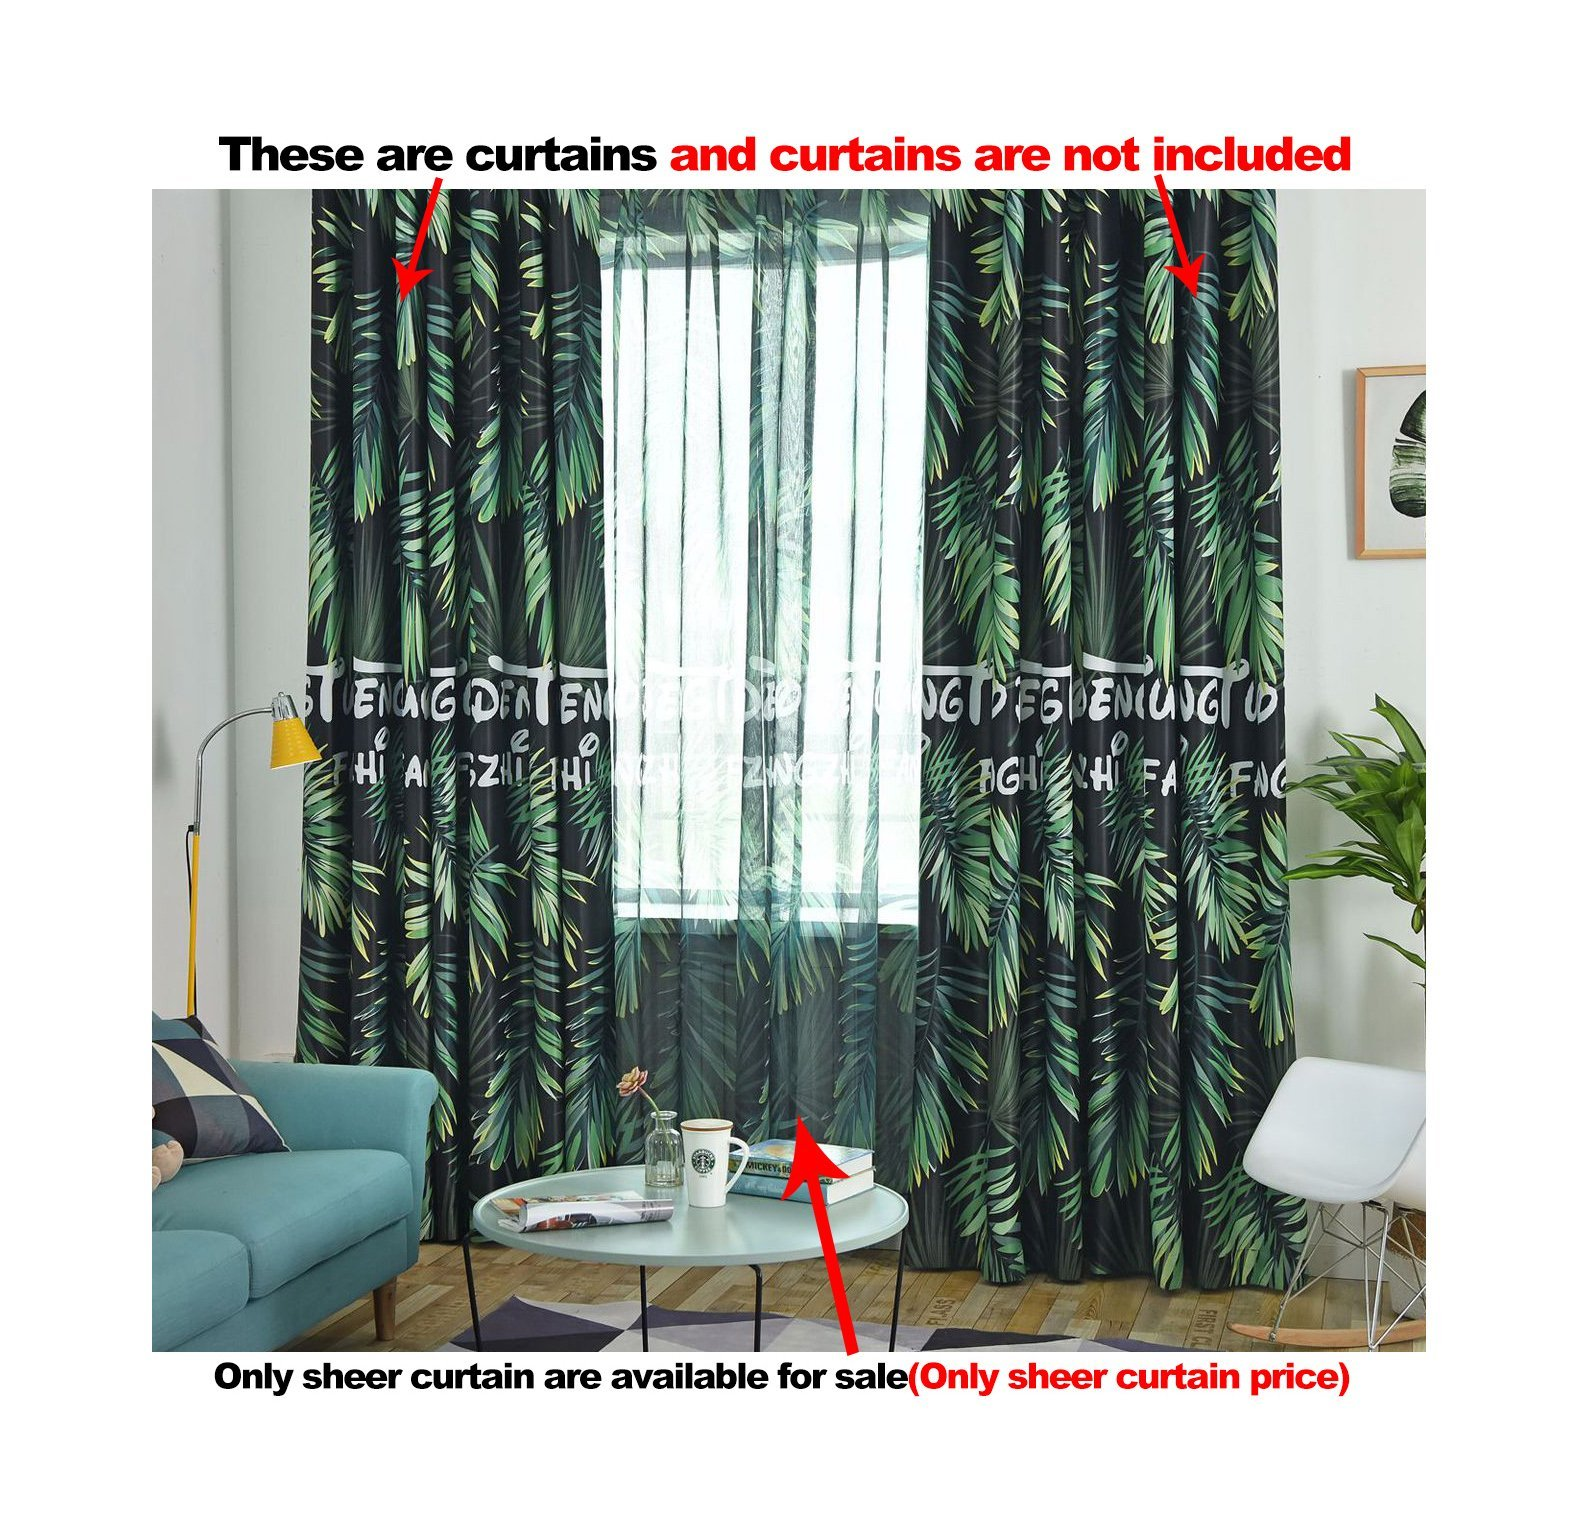 ASide BSide Rod Pocket Top Banana Trees Printed Sheer Curtains Rainforest Style Breathable Window Decoration For Kitchen Sitting Room and Houseroom (1 Panel, W 52 x L 63 inch, Green)